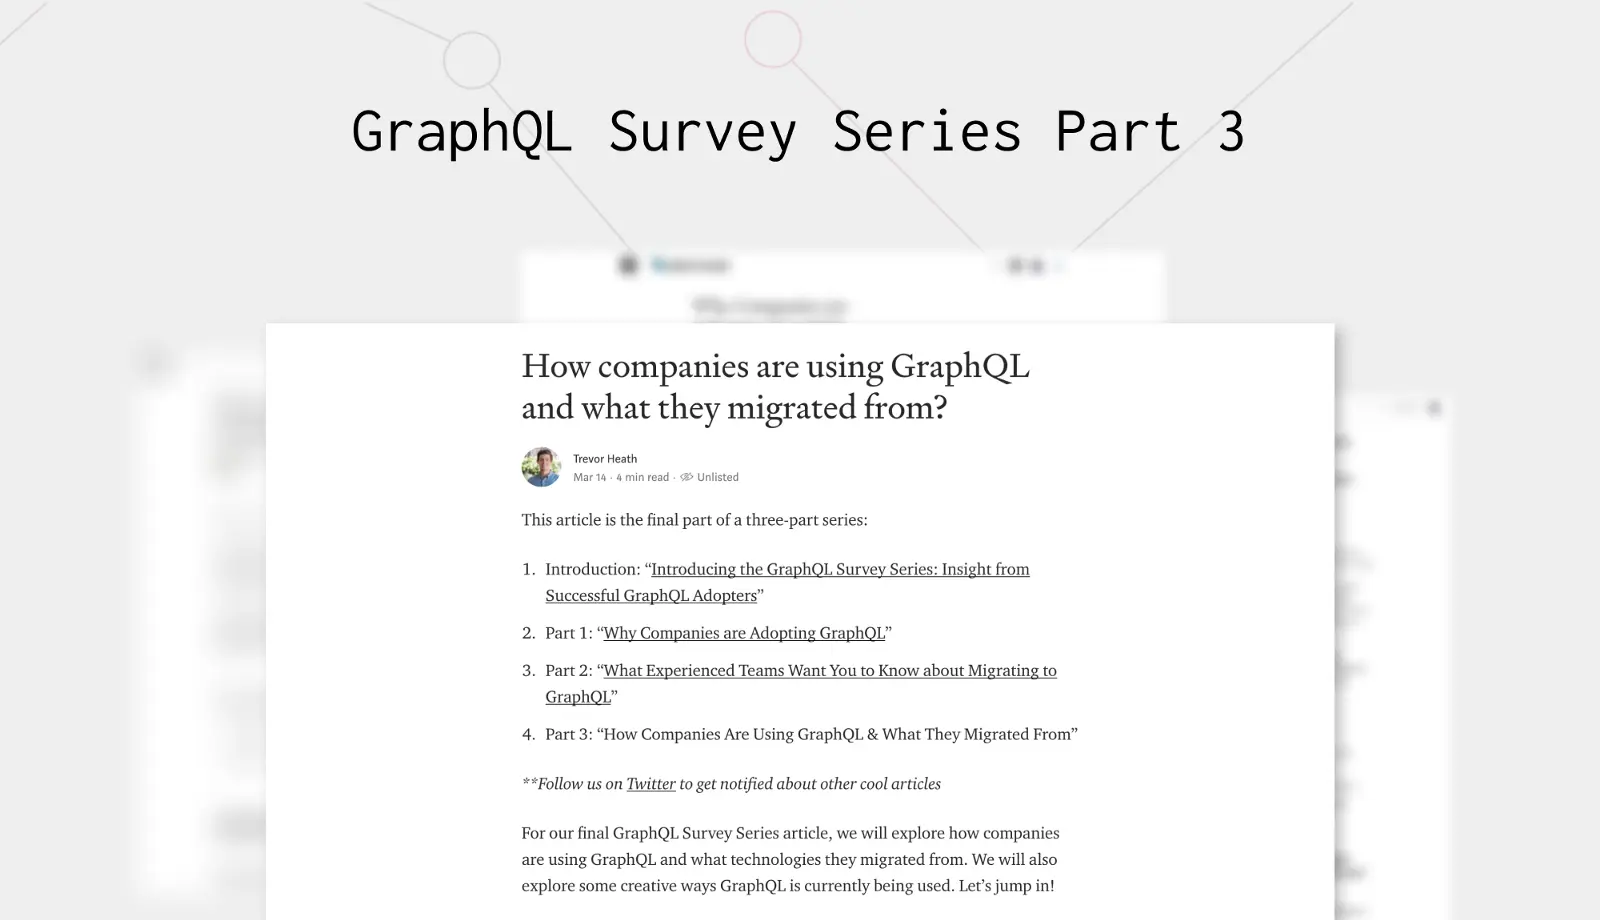 How Companies are Using GraphQL and What They Migrated From